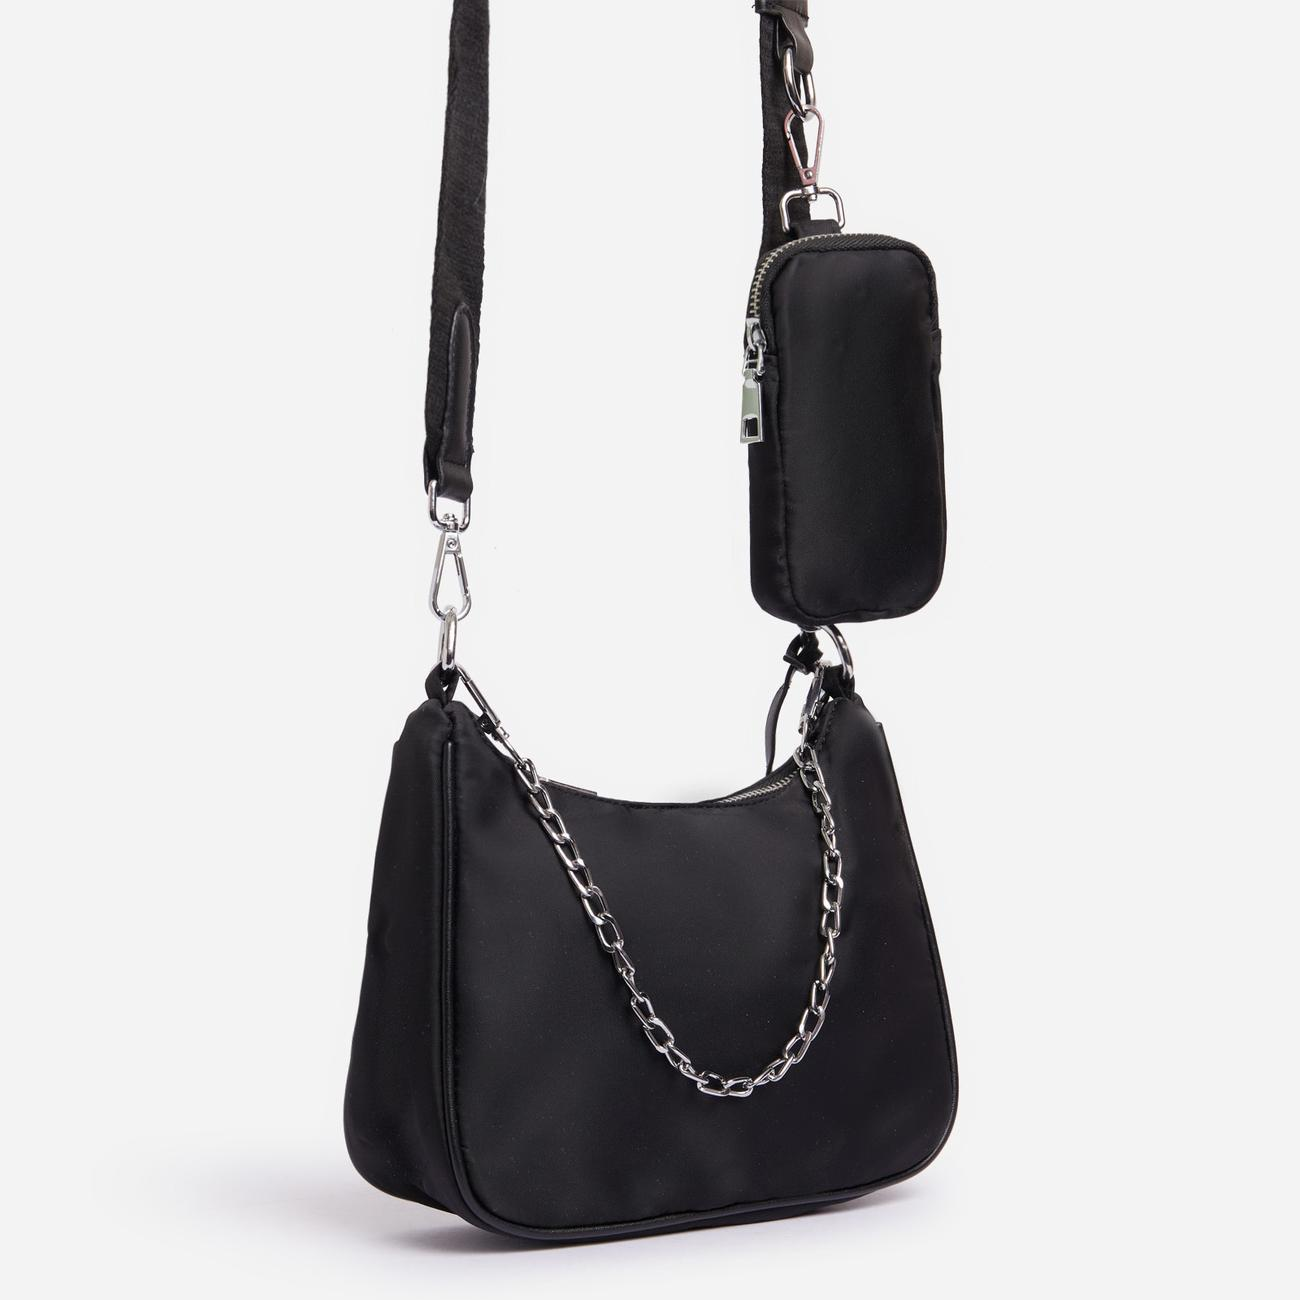 Melody Purse Detail Cross Body Bag In Black Nylon Image 1